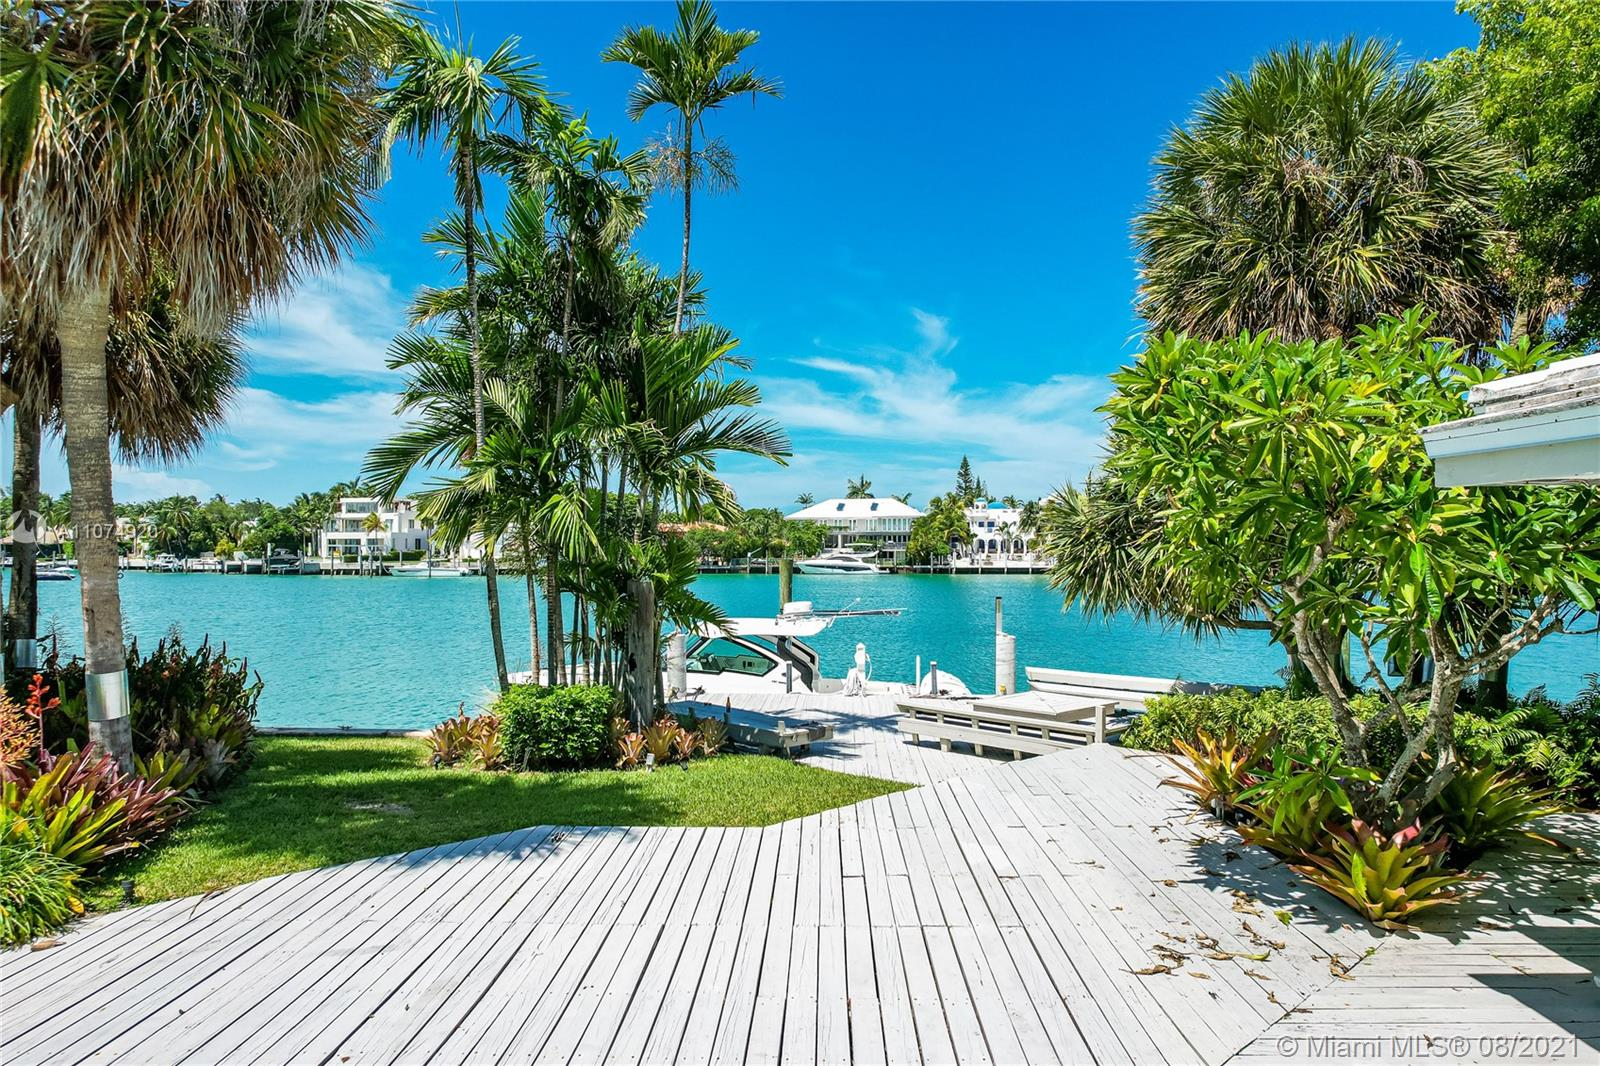 Ideal home for the waterfront enthusiast, boasting 104-feet of water frontage with an unobstructed view of the Miami Skyline. 15,000+ SF lot located in one of Key Biscayne's most desirable waterways, Hurricane Harbor.  The house is situated on the widest part of the protected harbor and features a boat Davits and an oversized extended dock over the water - a boater's dream. Fantastic opportunity to transform this spacious home or build a tropical dream home on North Mashta Island. Living areas include 4BR/4BA plus staff quarters, two dens, separate dining and living room. Exterior features include covered patio, heated swimming pool. Seller is a developer and may provide complete Architectual plans for remodeling the house or construction of new home.